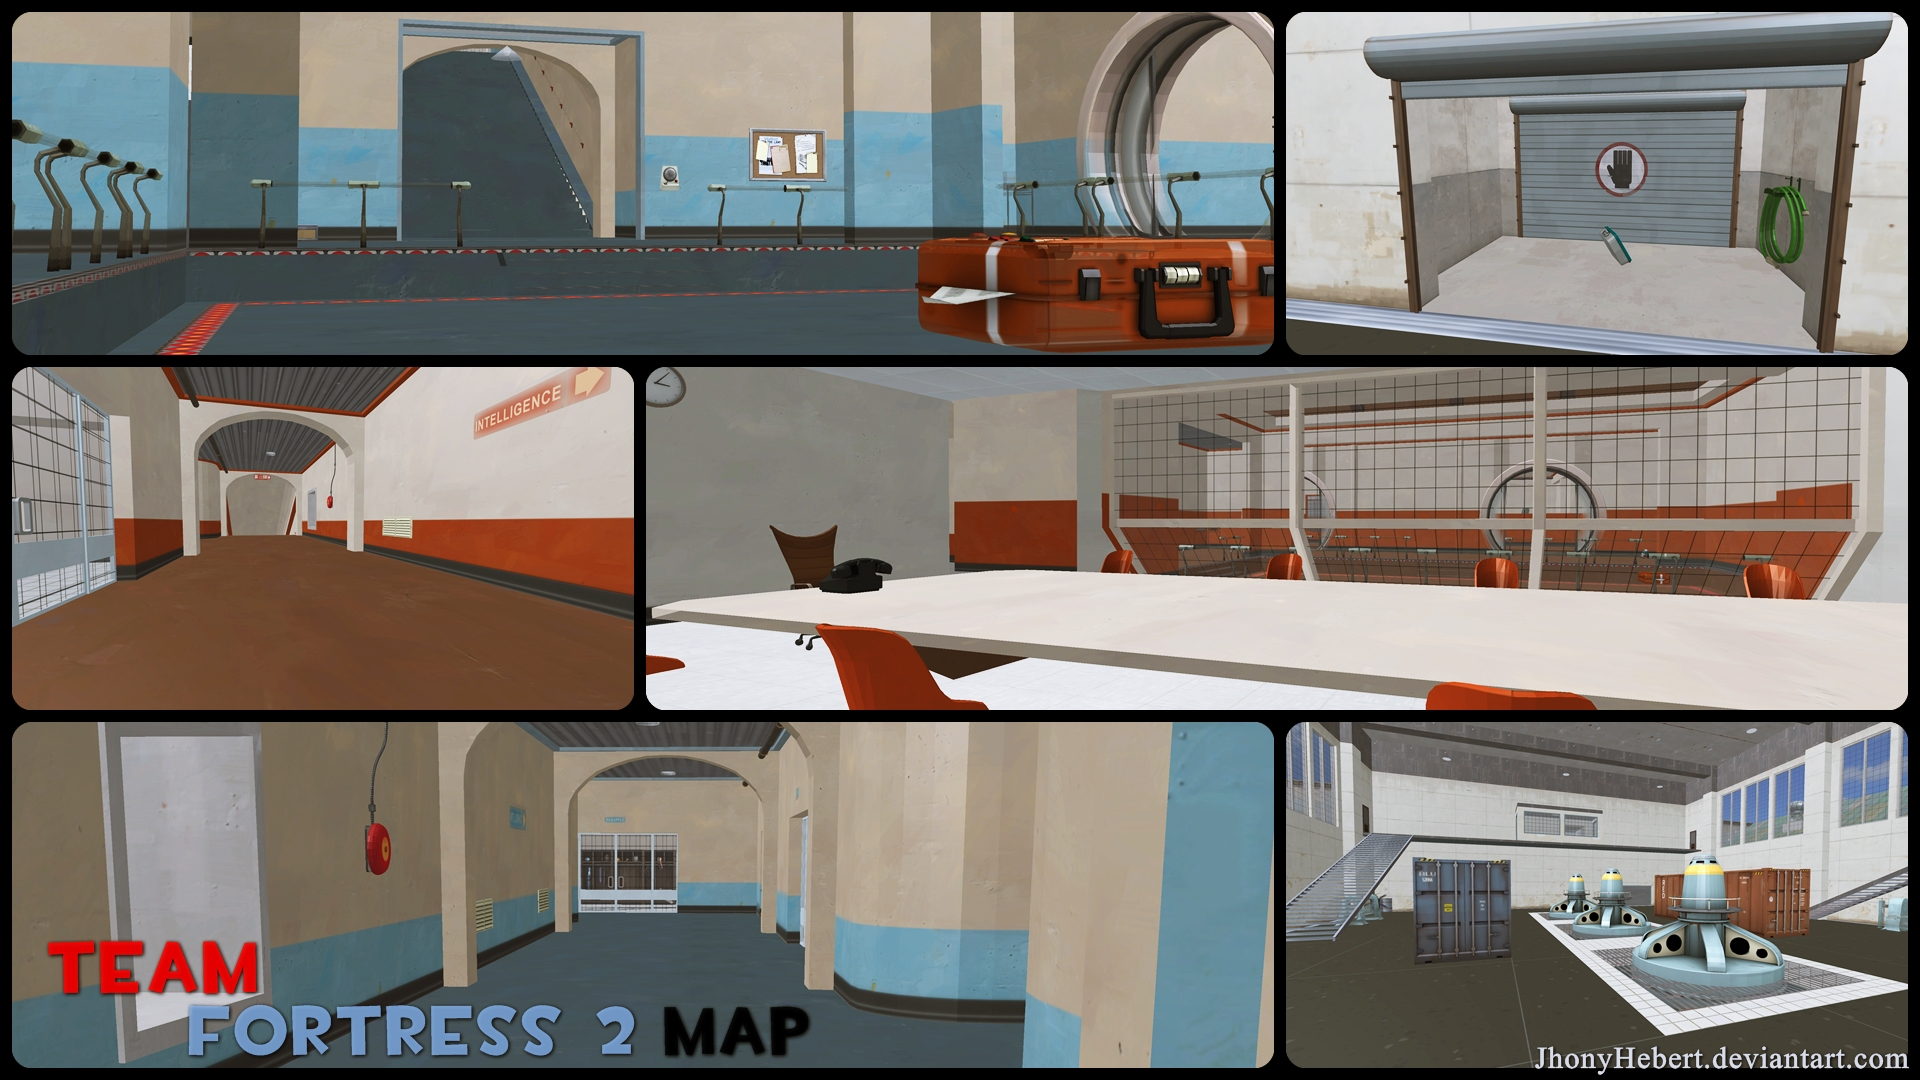 Team Fortress 2 Map - Download by JhonyHebert